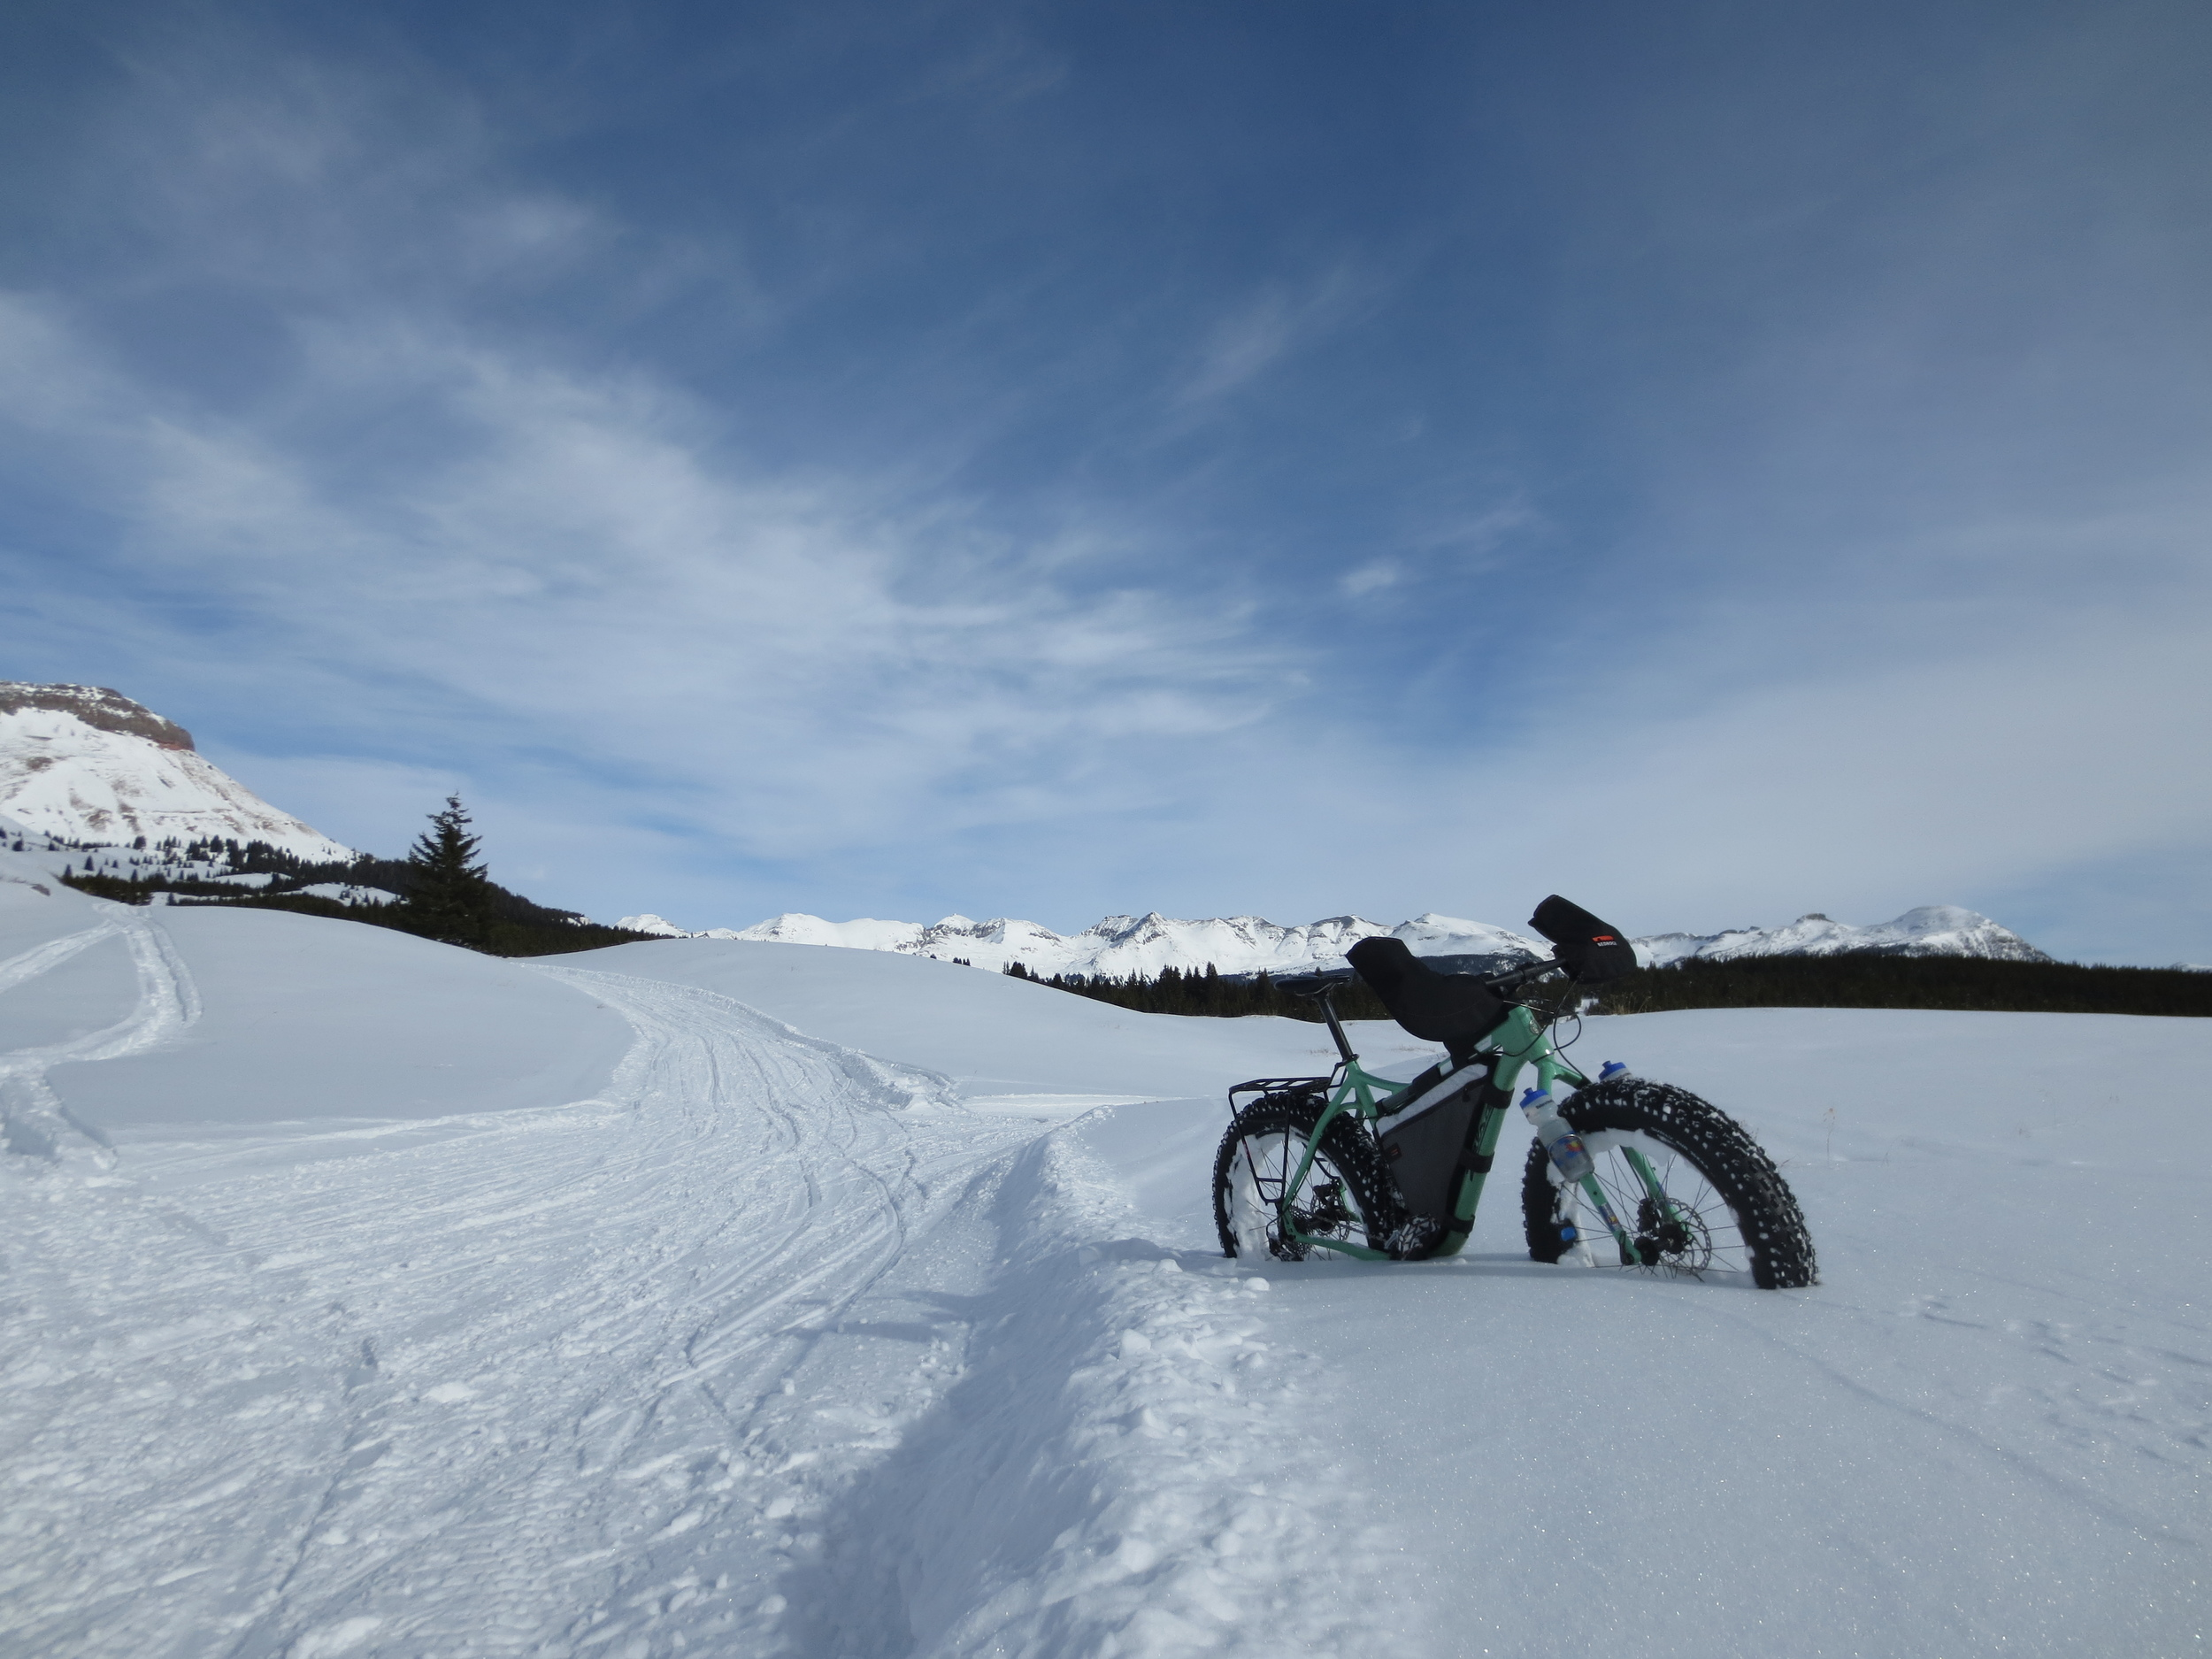 The snocat tracks at Molas Pass have been awesome riding.